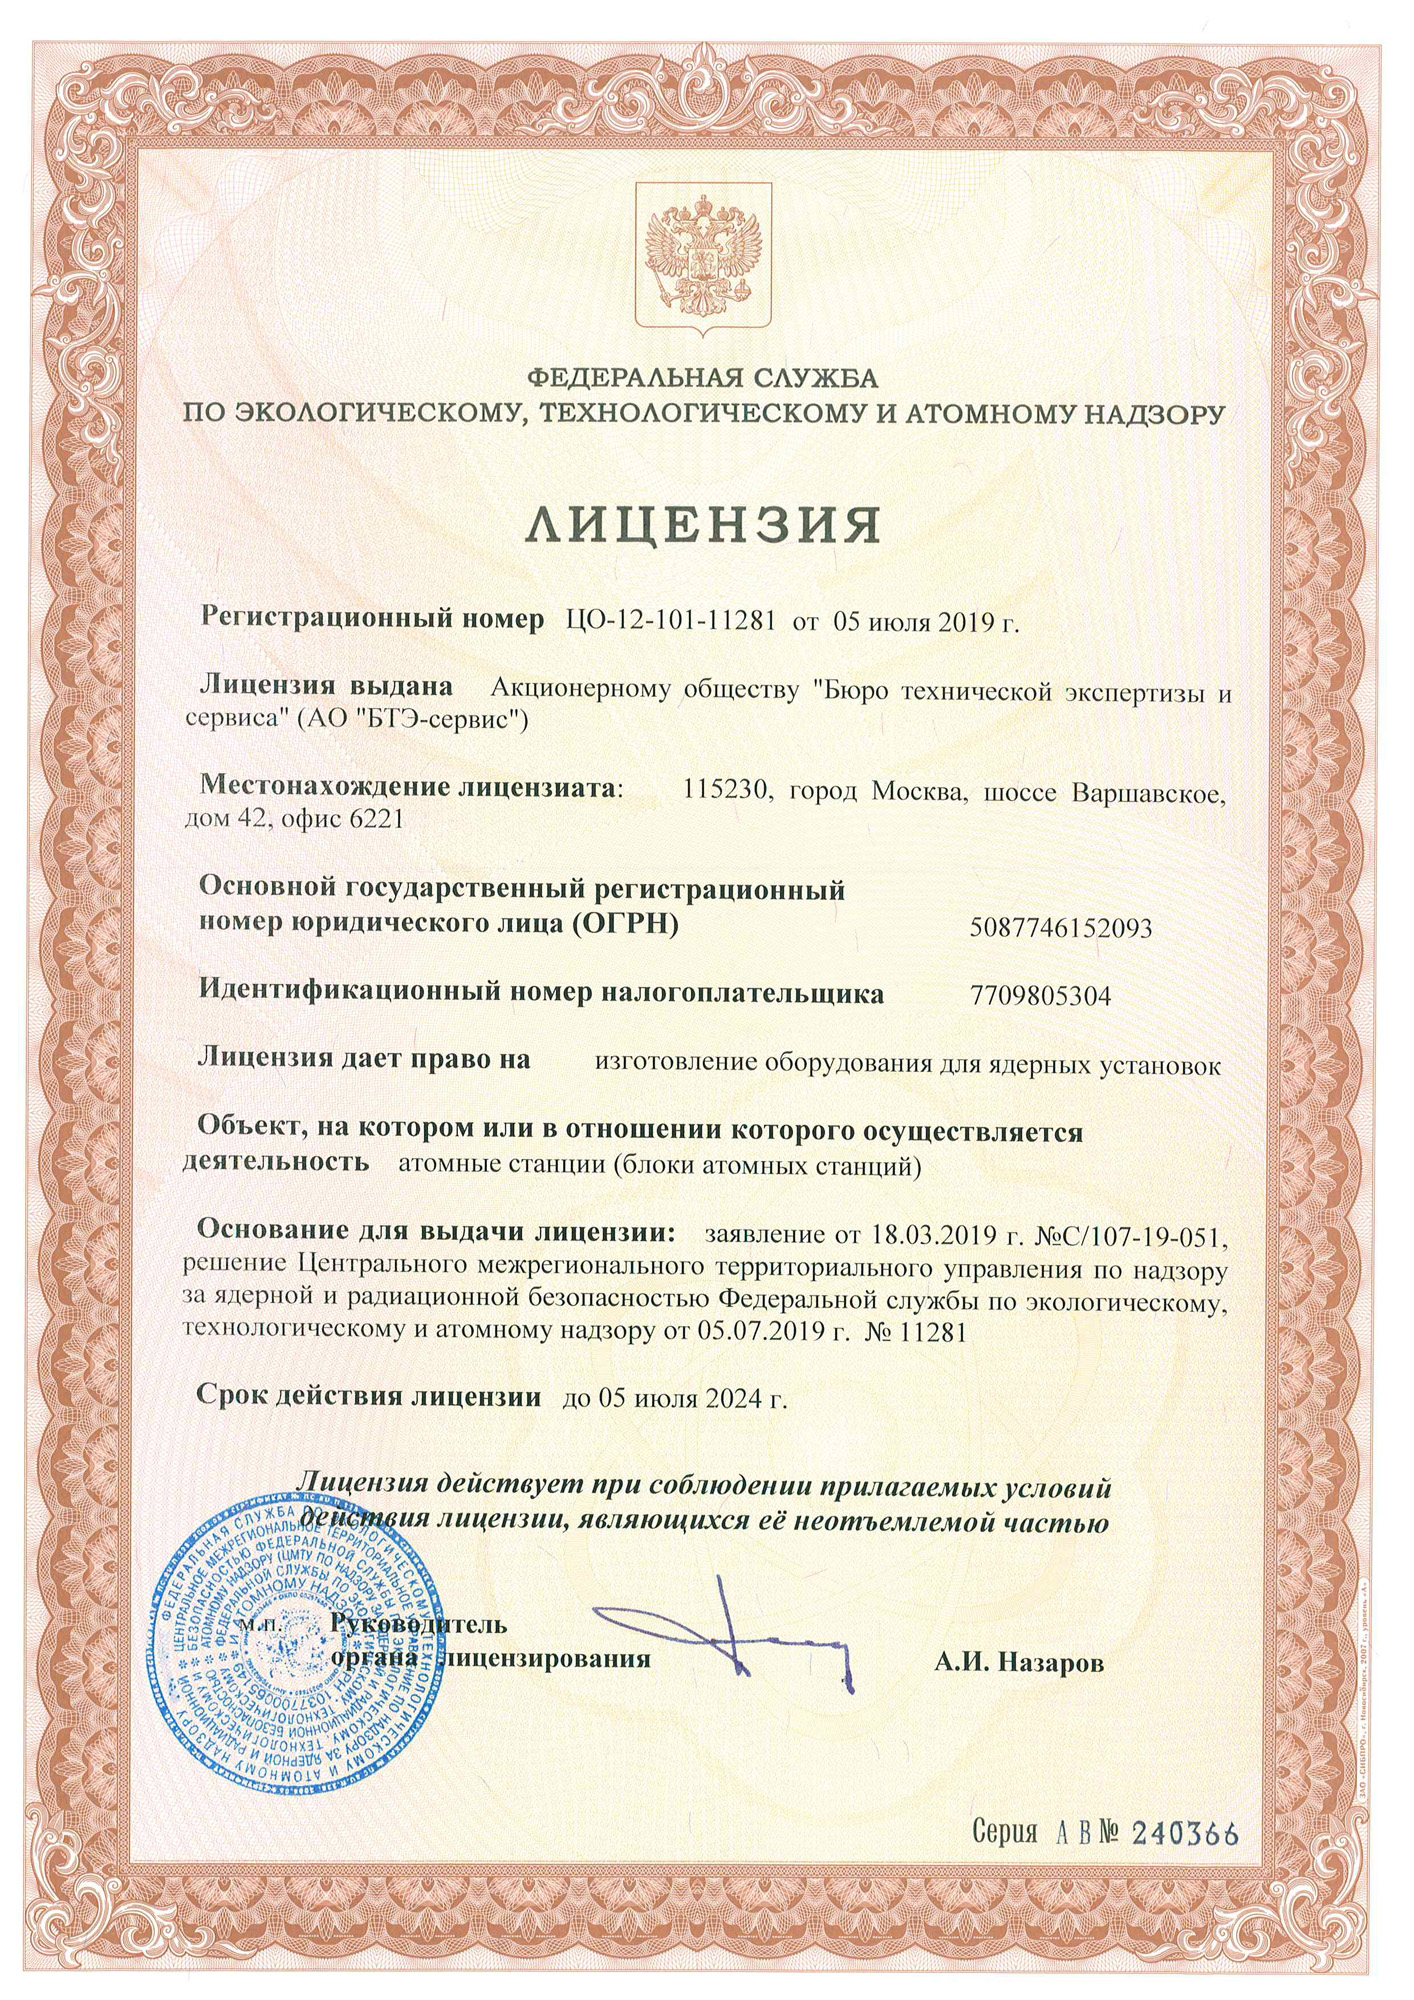 License for manufacturing